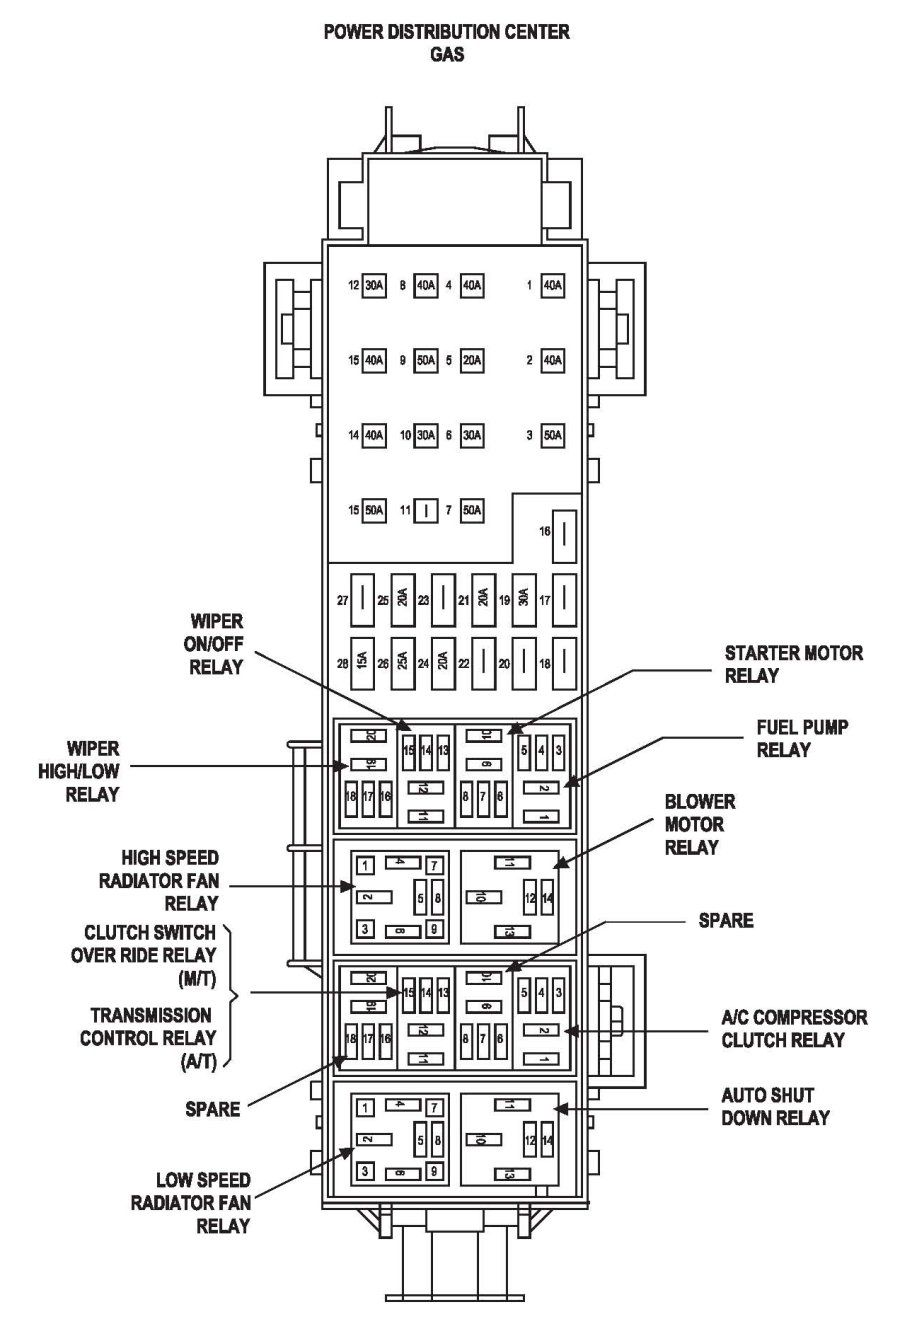 b3536c3739783eb19f827744cc42c3c4 jeep liberty fuse box diagram image details jeep liberty 2003 jeep fuse box at gsmx.co